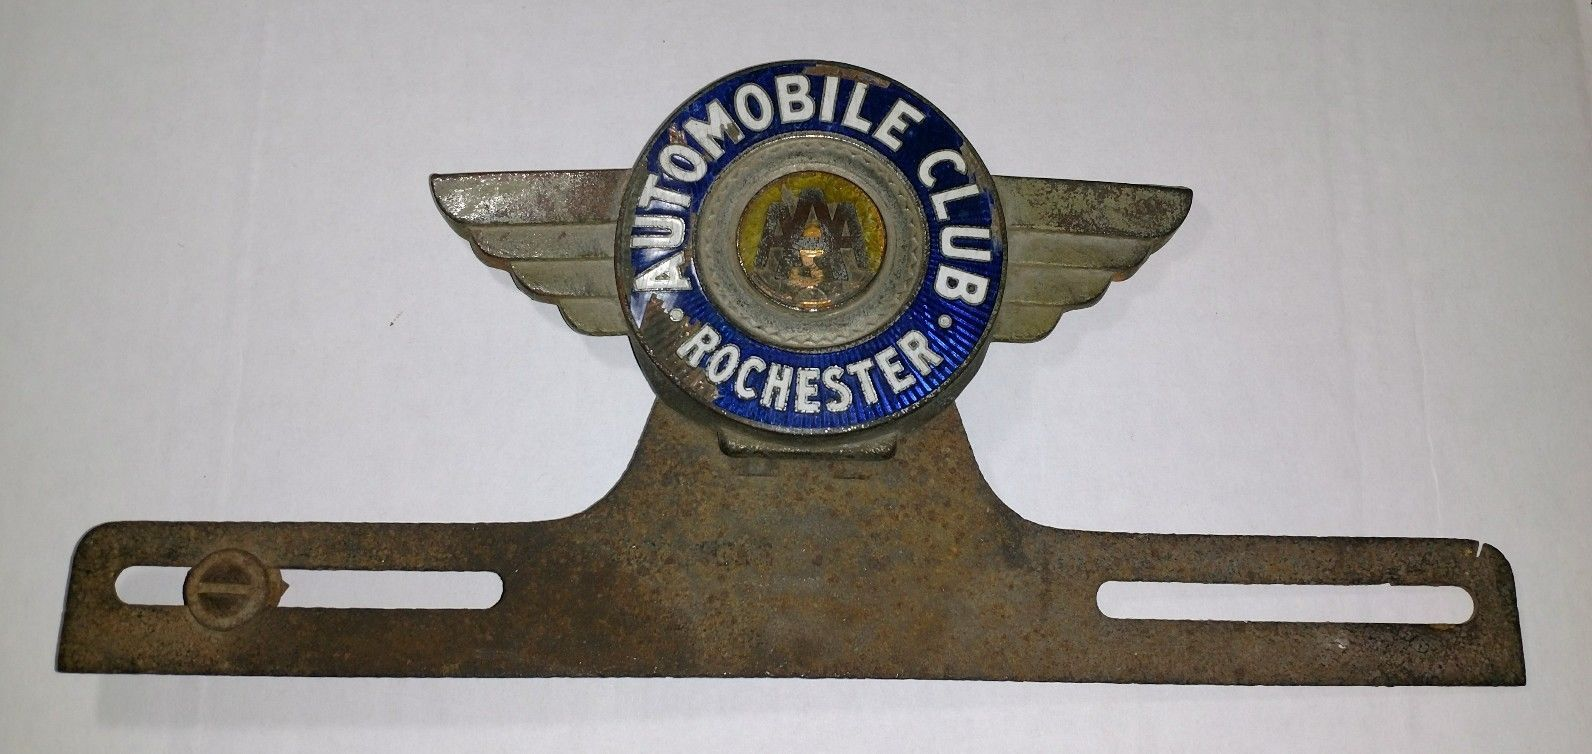 Aaa Auto Club Radiator Badge / Emblem License Plate Topper W